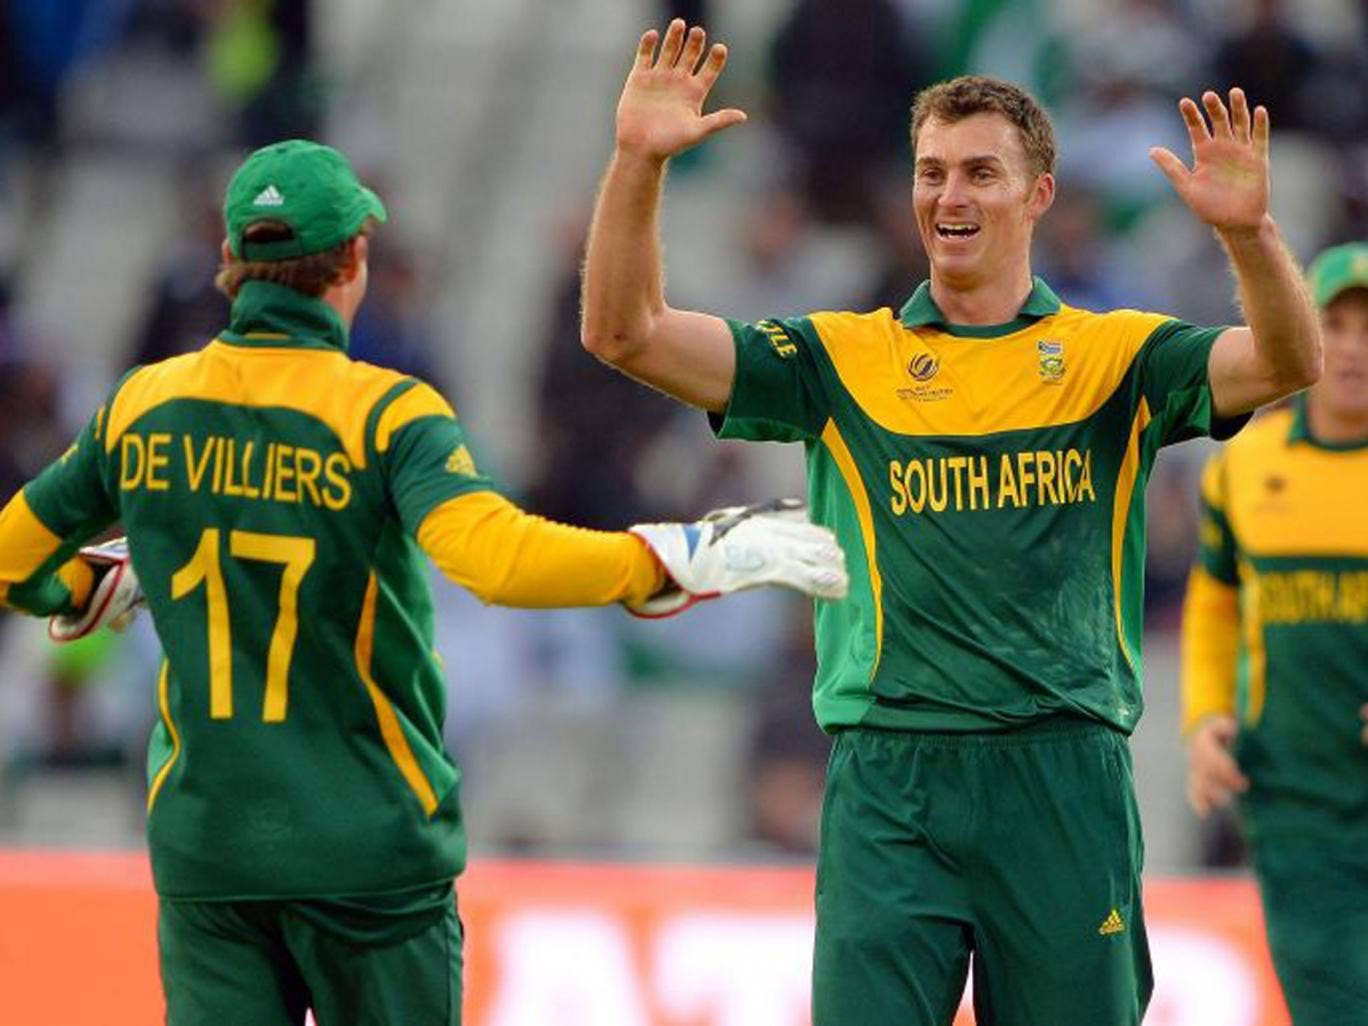 South African bowler Ryan McLaren celebrates wrapping up Pakistan's innings with the wicket of Junaid Khan